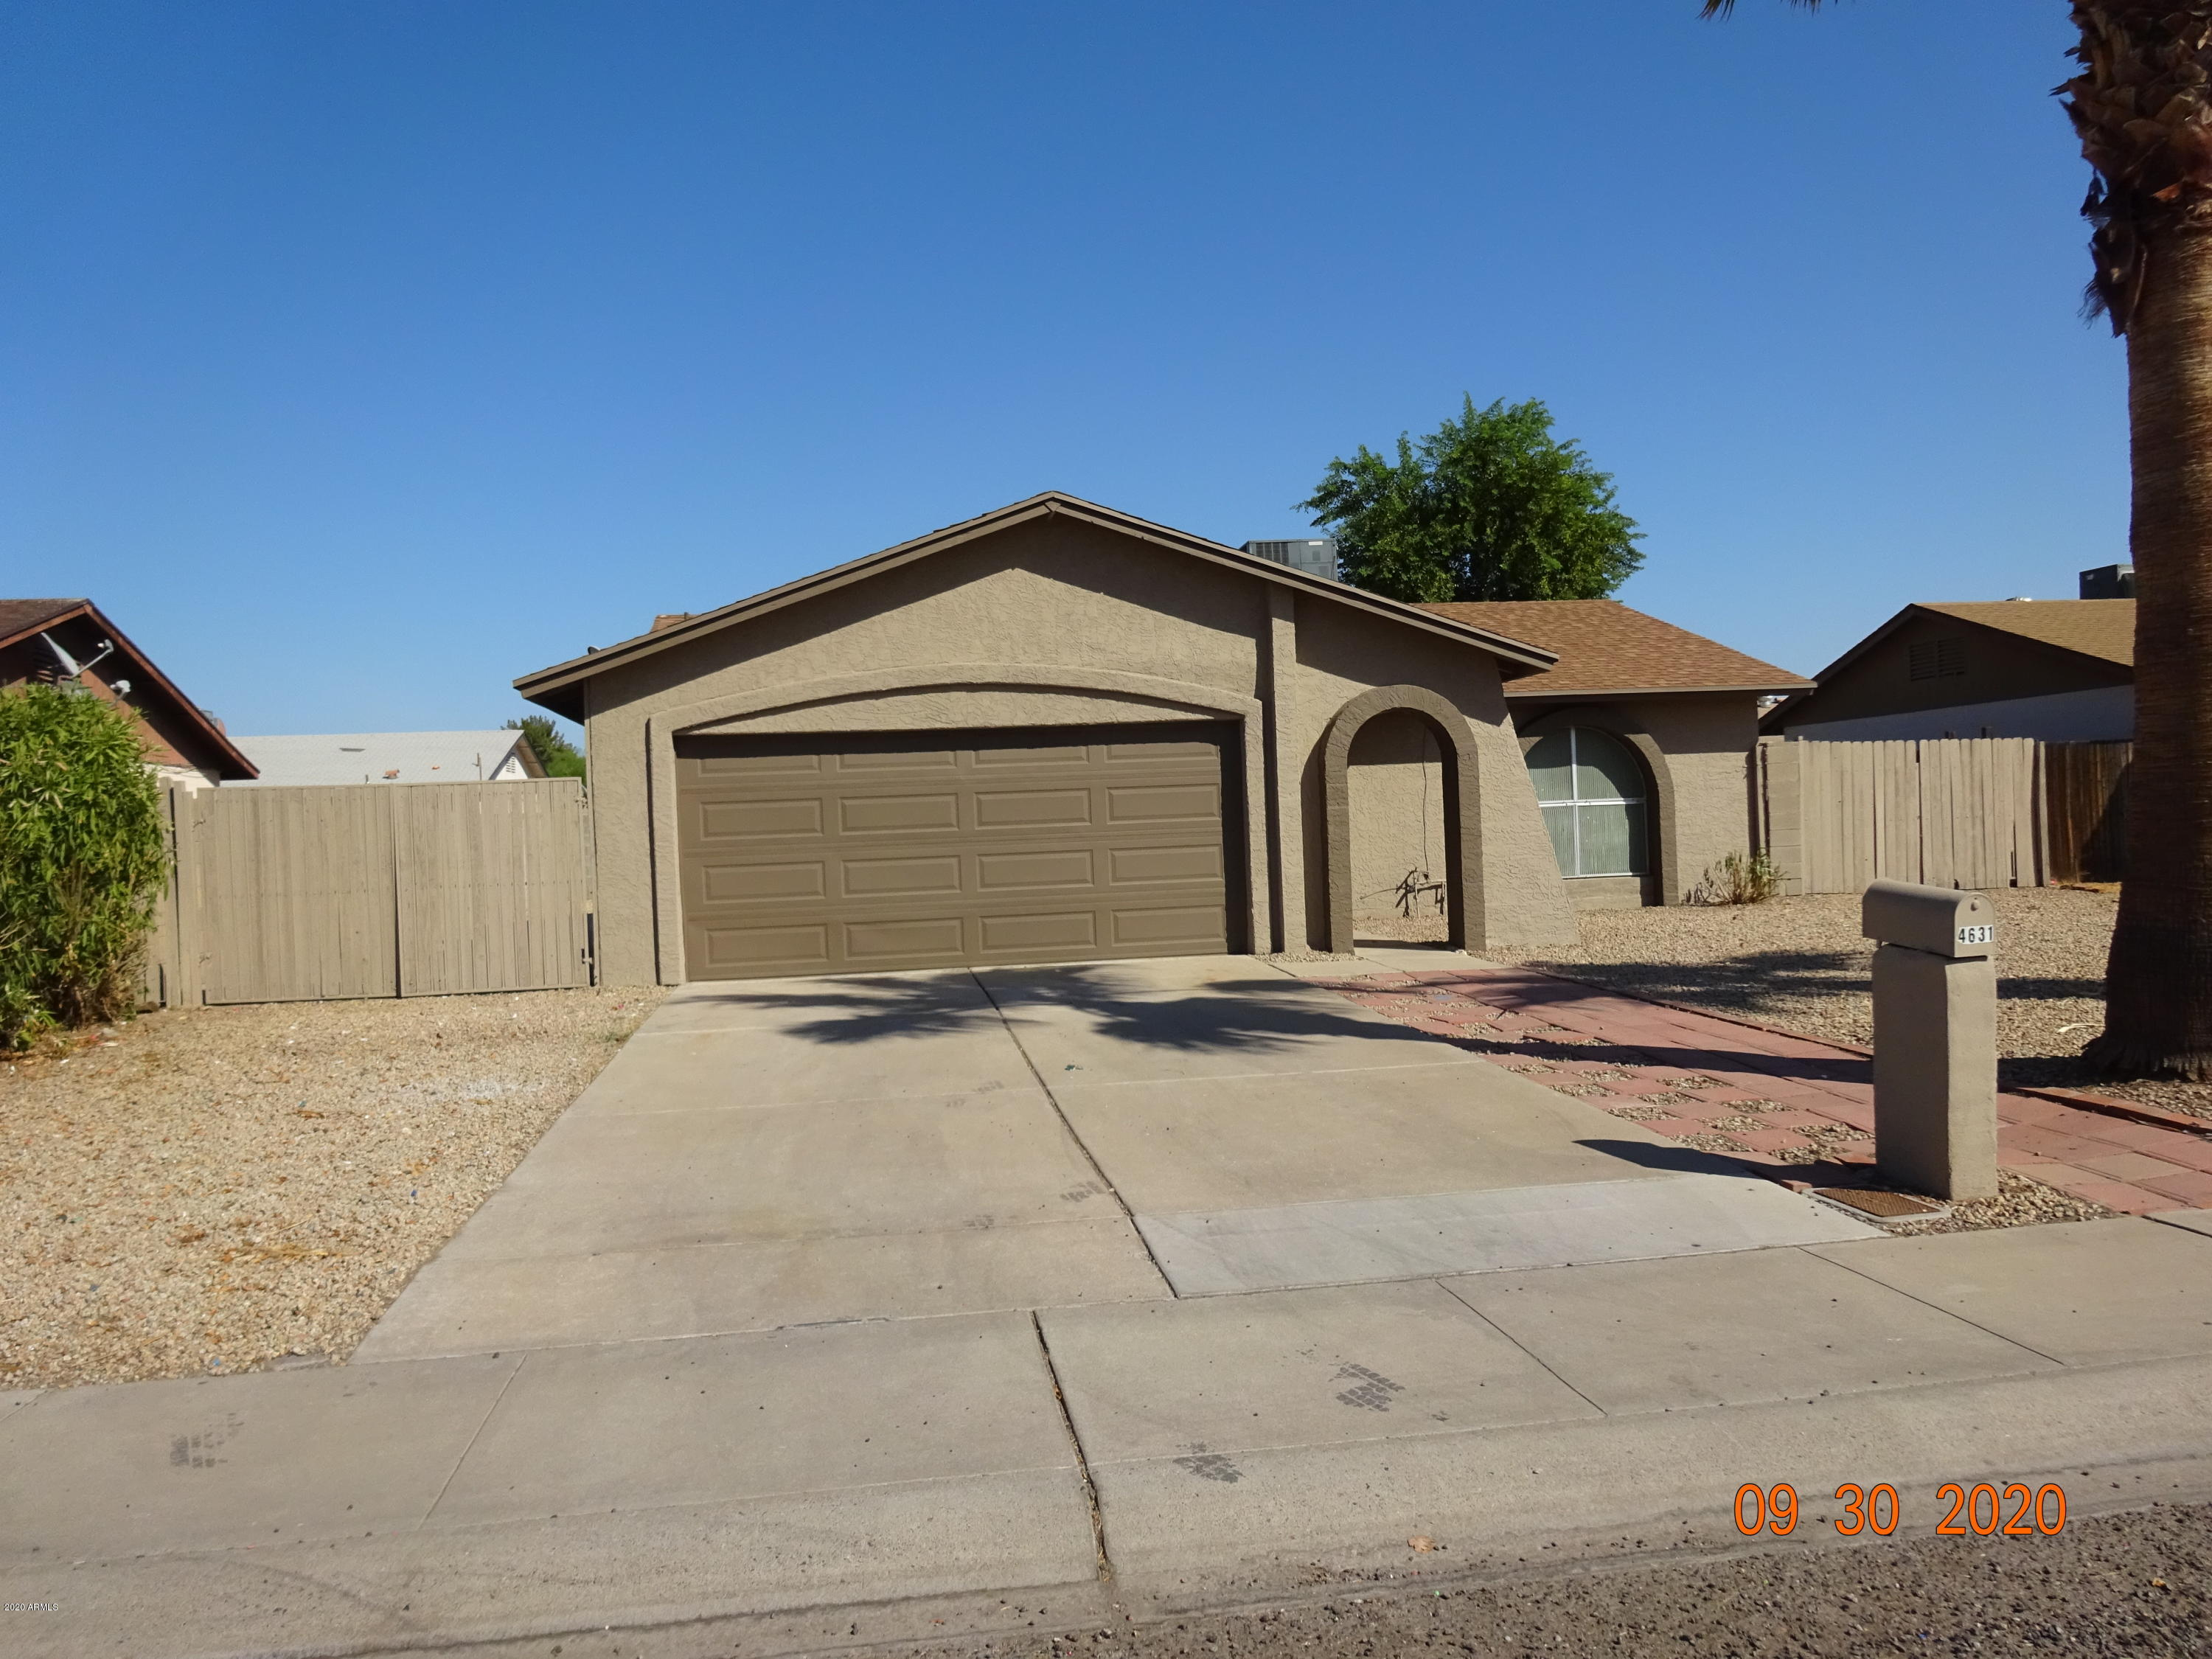 75TH Lane, Phoenix, Arizona 85033, 2 Bedrooms Bedrooms, ,1.75 BathroomsBathrooms,Residential Rental,For Sale,75TH,6139305